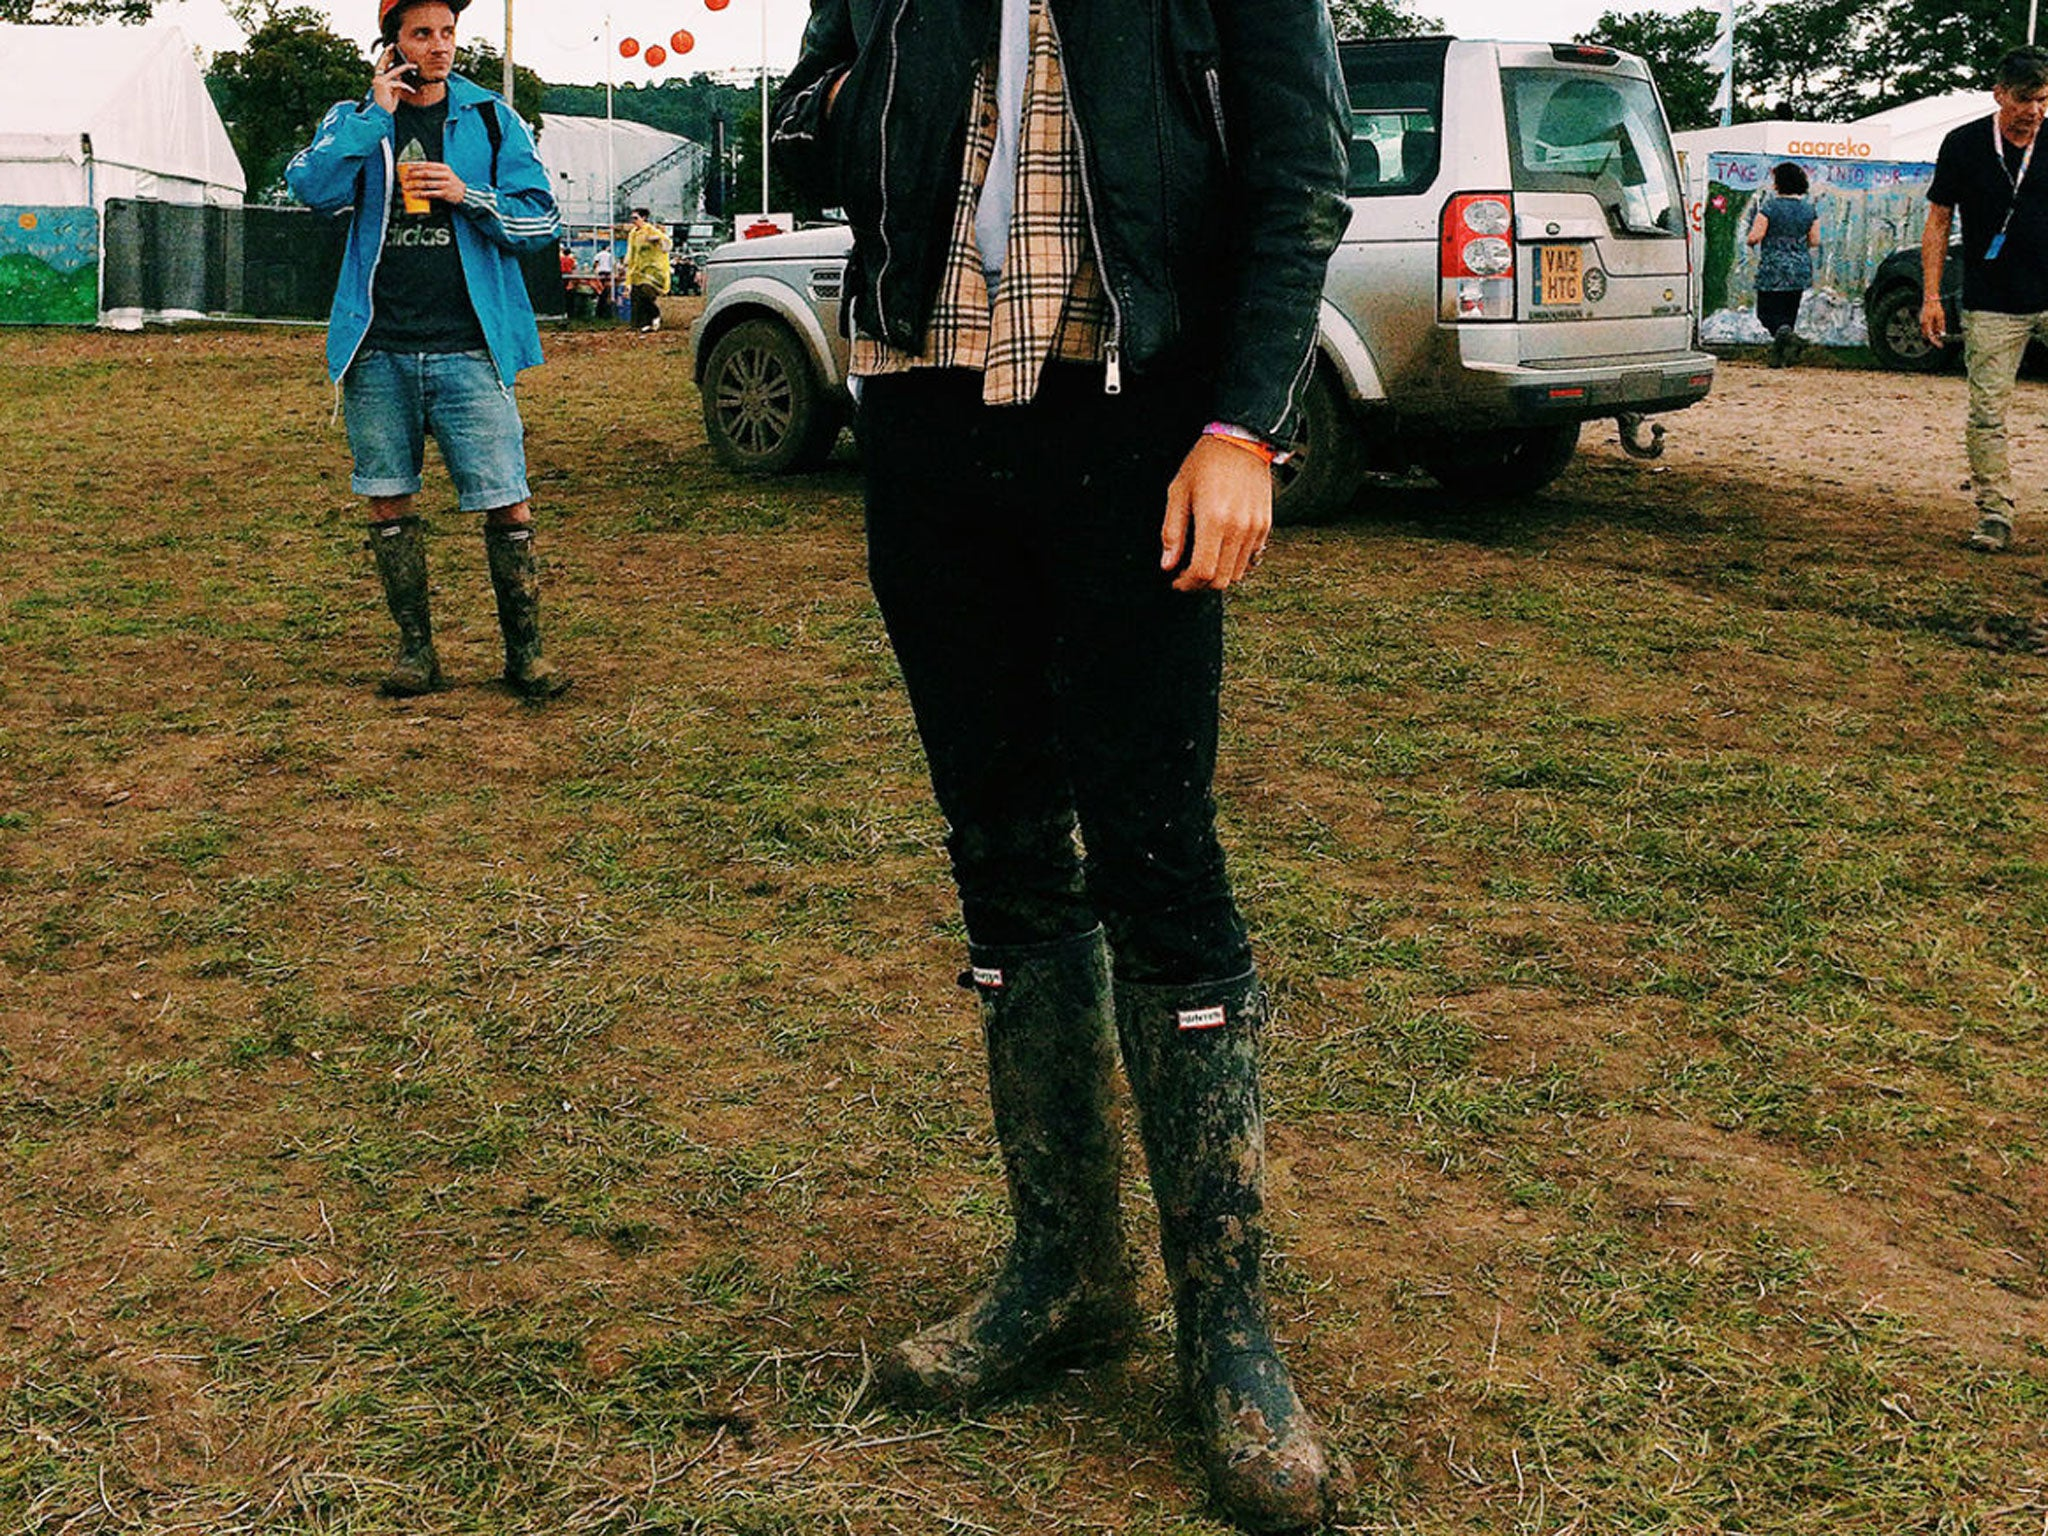 10 Best Festival Wellies For Men The Independent